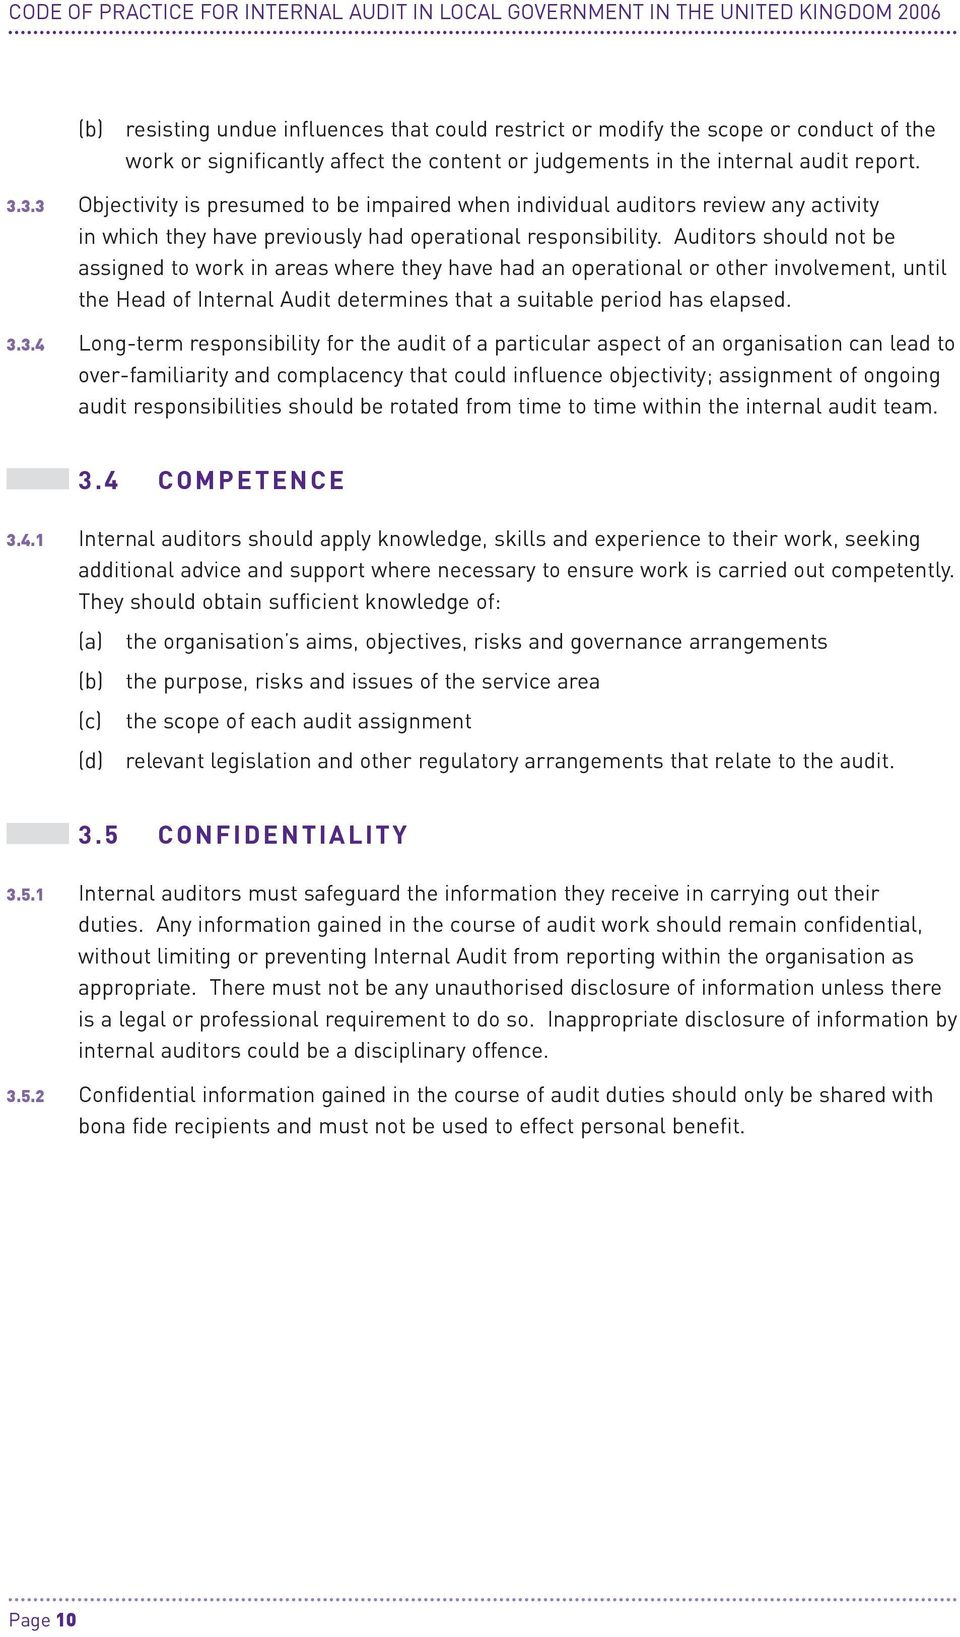 3.3 Objectivity is presumed to be impaired when individual auditors review any activity in which they have previously had operational responsibility.